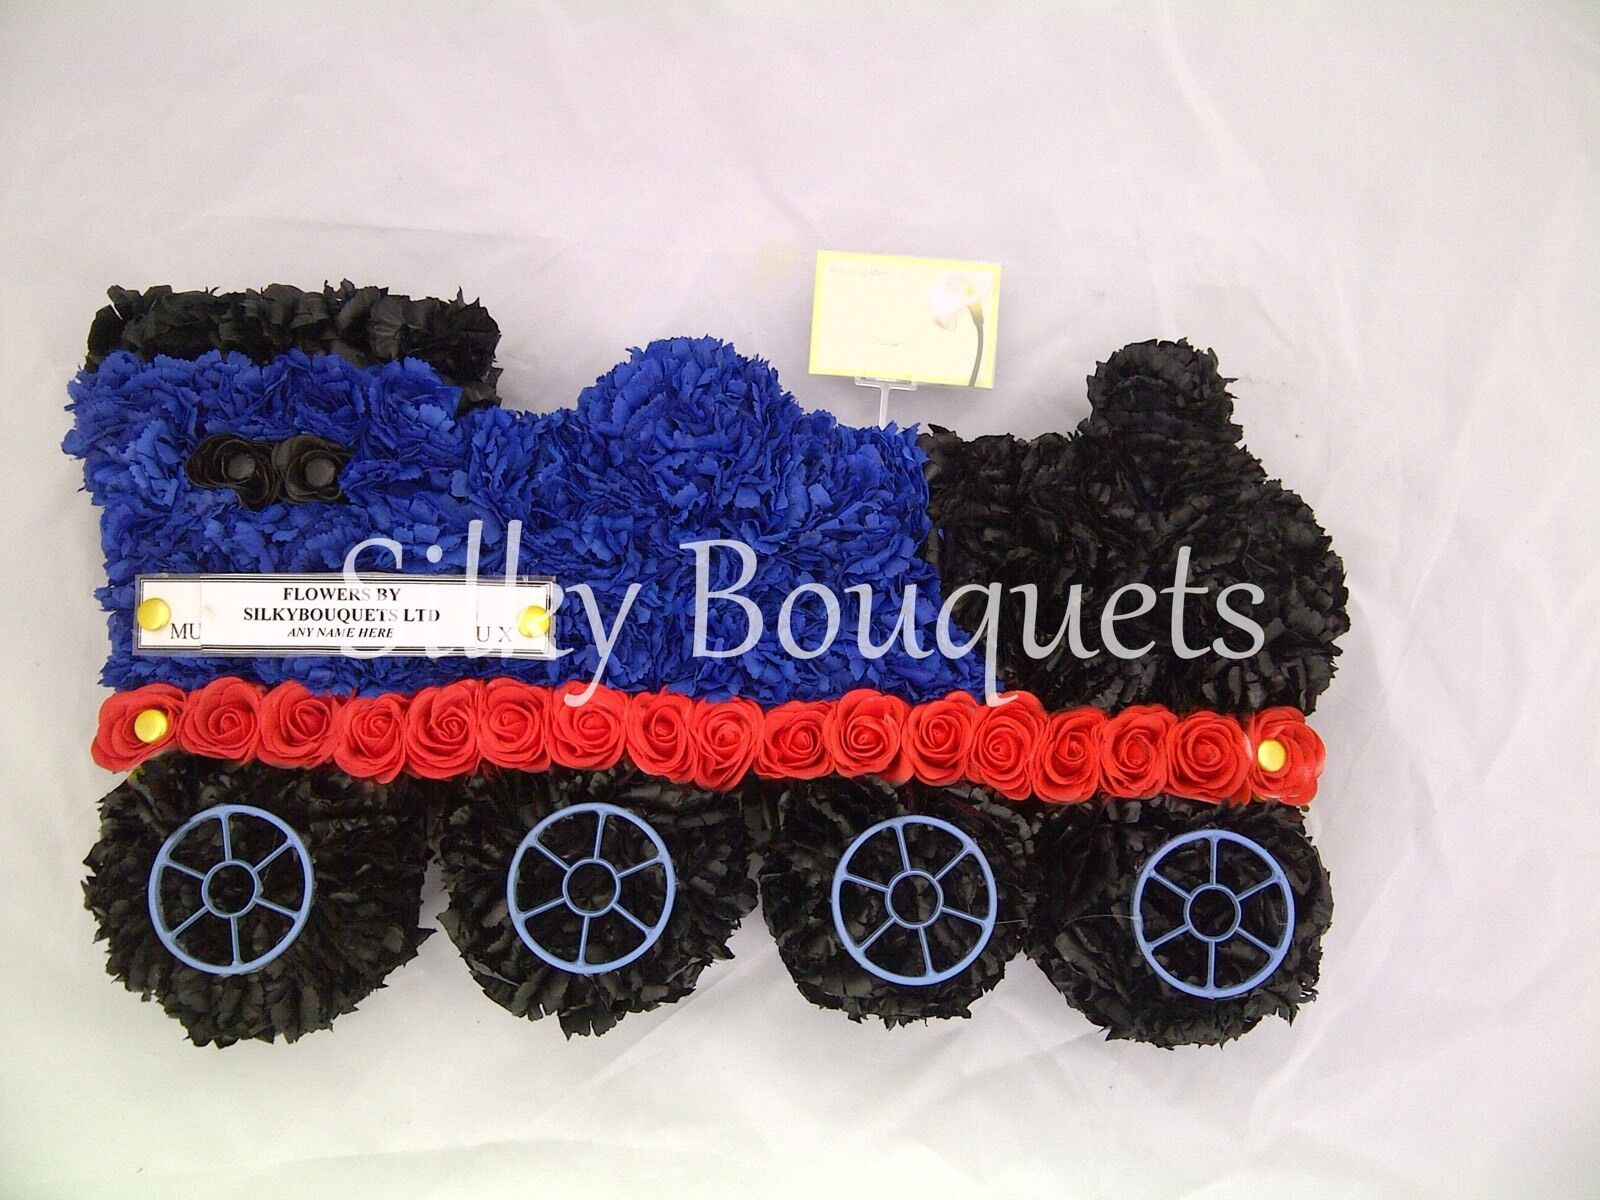 Train Artificial Silk Funeral Flower Tribute Wreath Memorial Son Baby Boy Floral